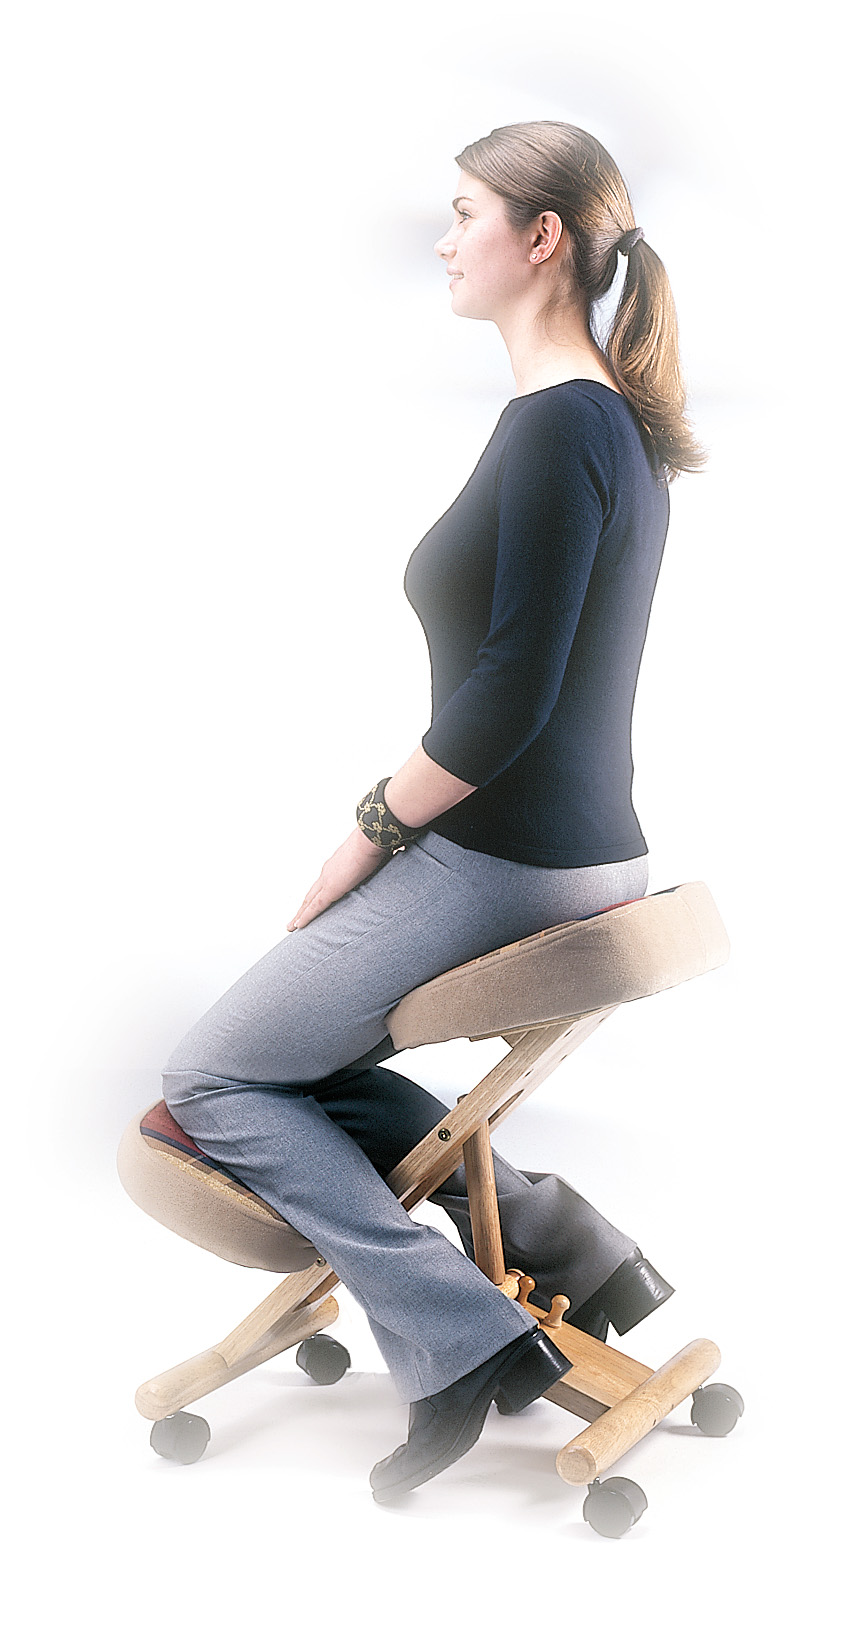 Posture Chair - Posture chair